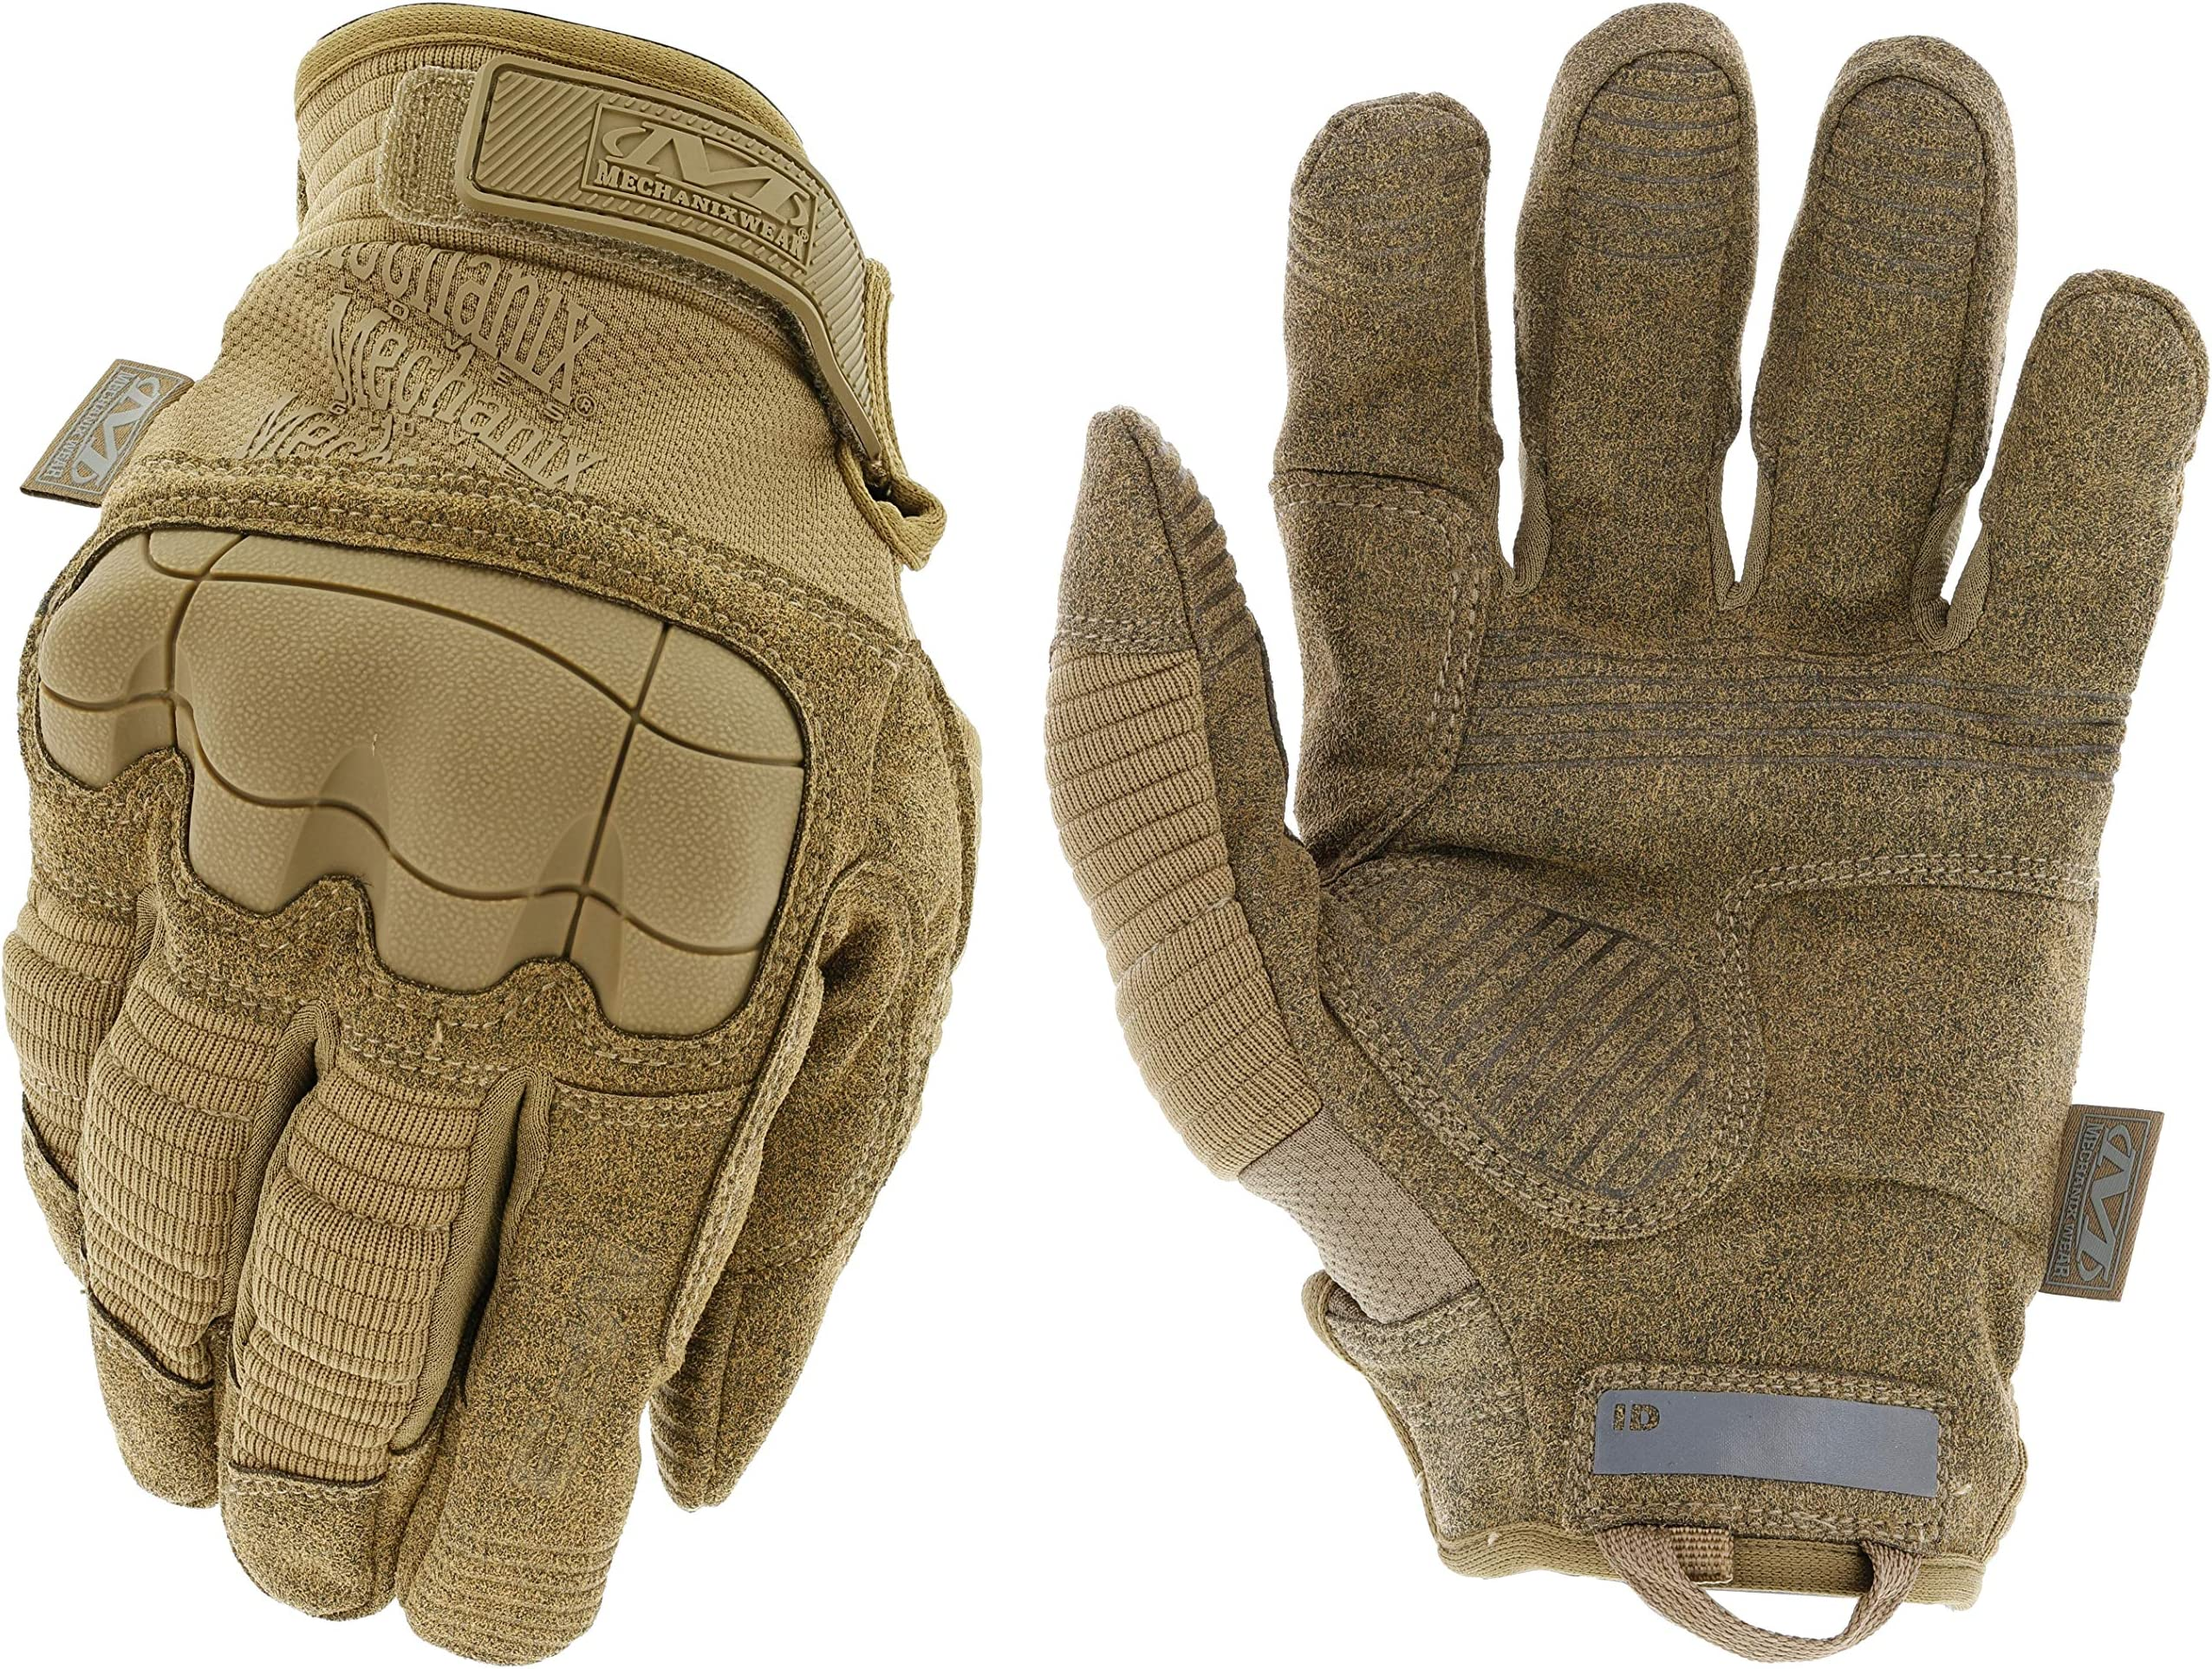 Mechanix Wear MP3-72-009 : M-Pact Coyote Tactical Work Gloves (Medium, Brown)